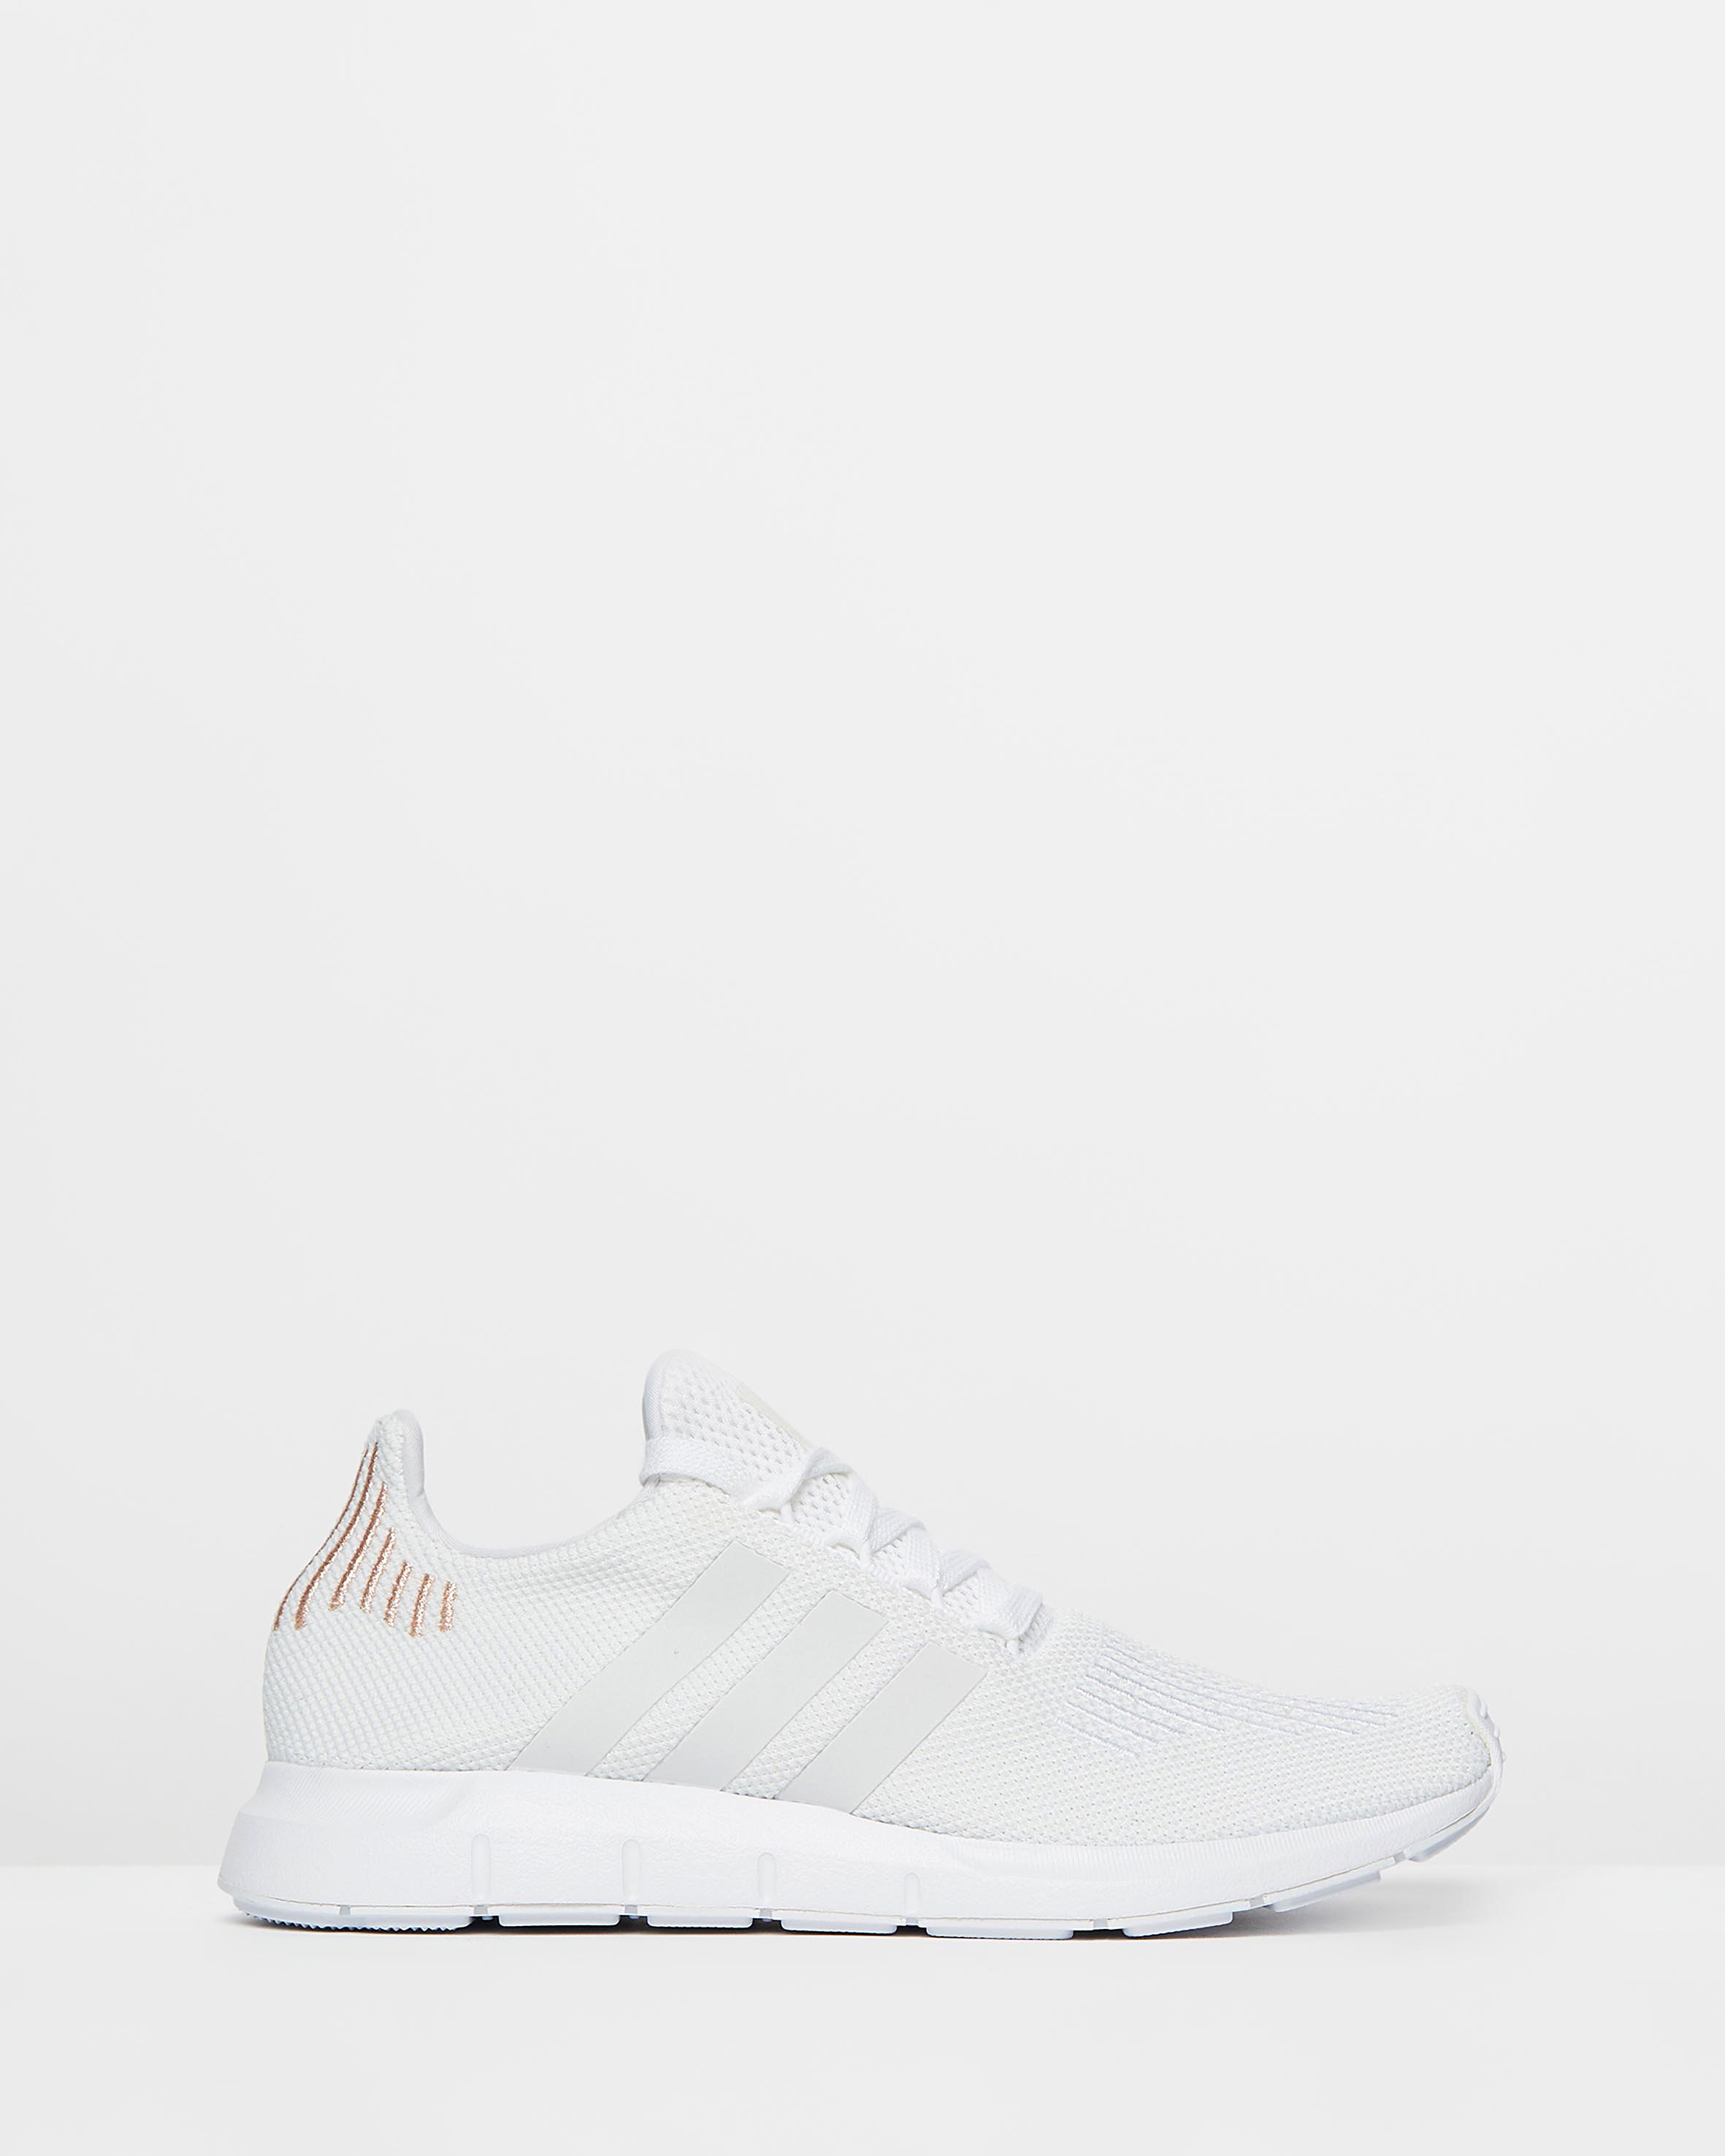 adidas Swift White & Rose Gold Shoes in 2020 | White tennis